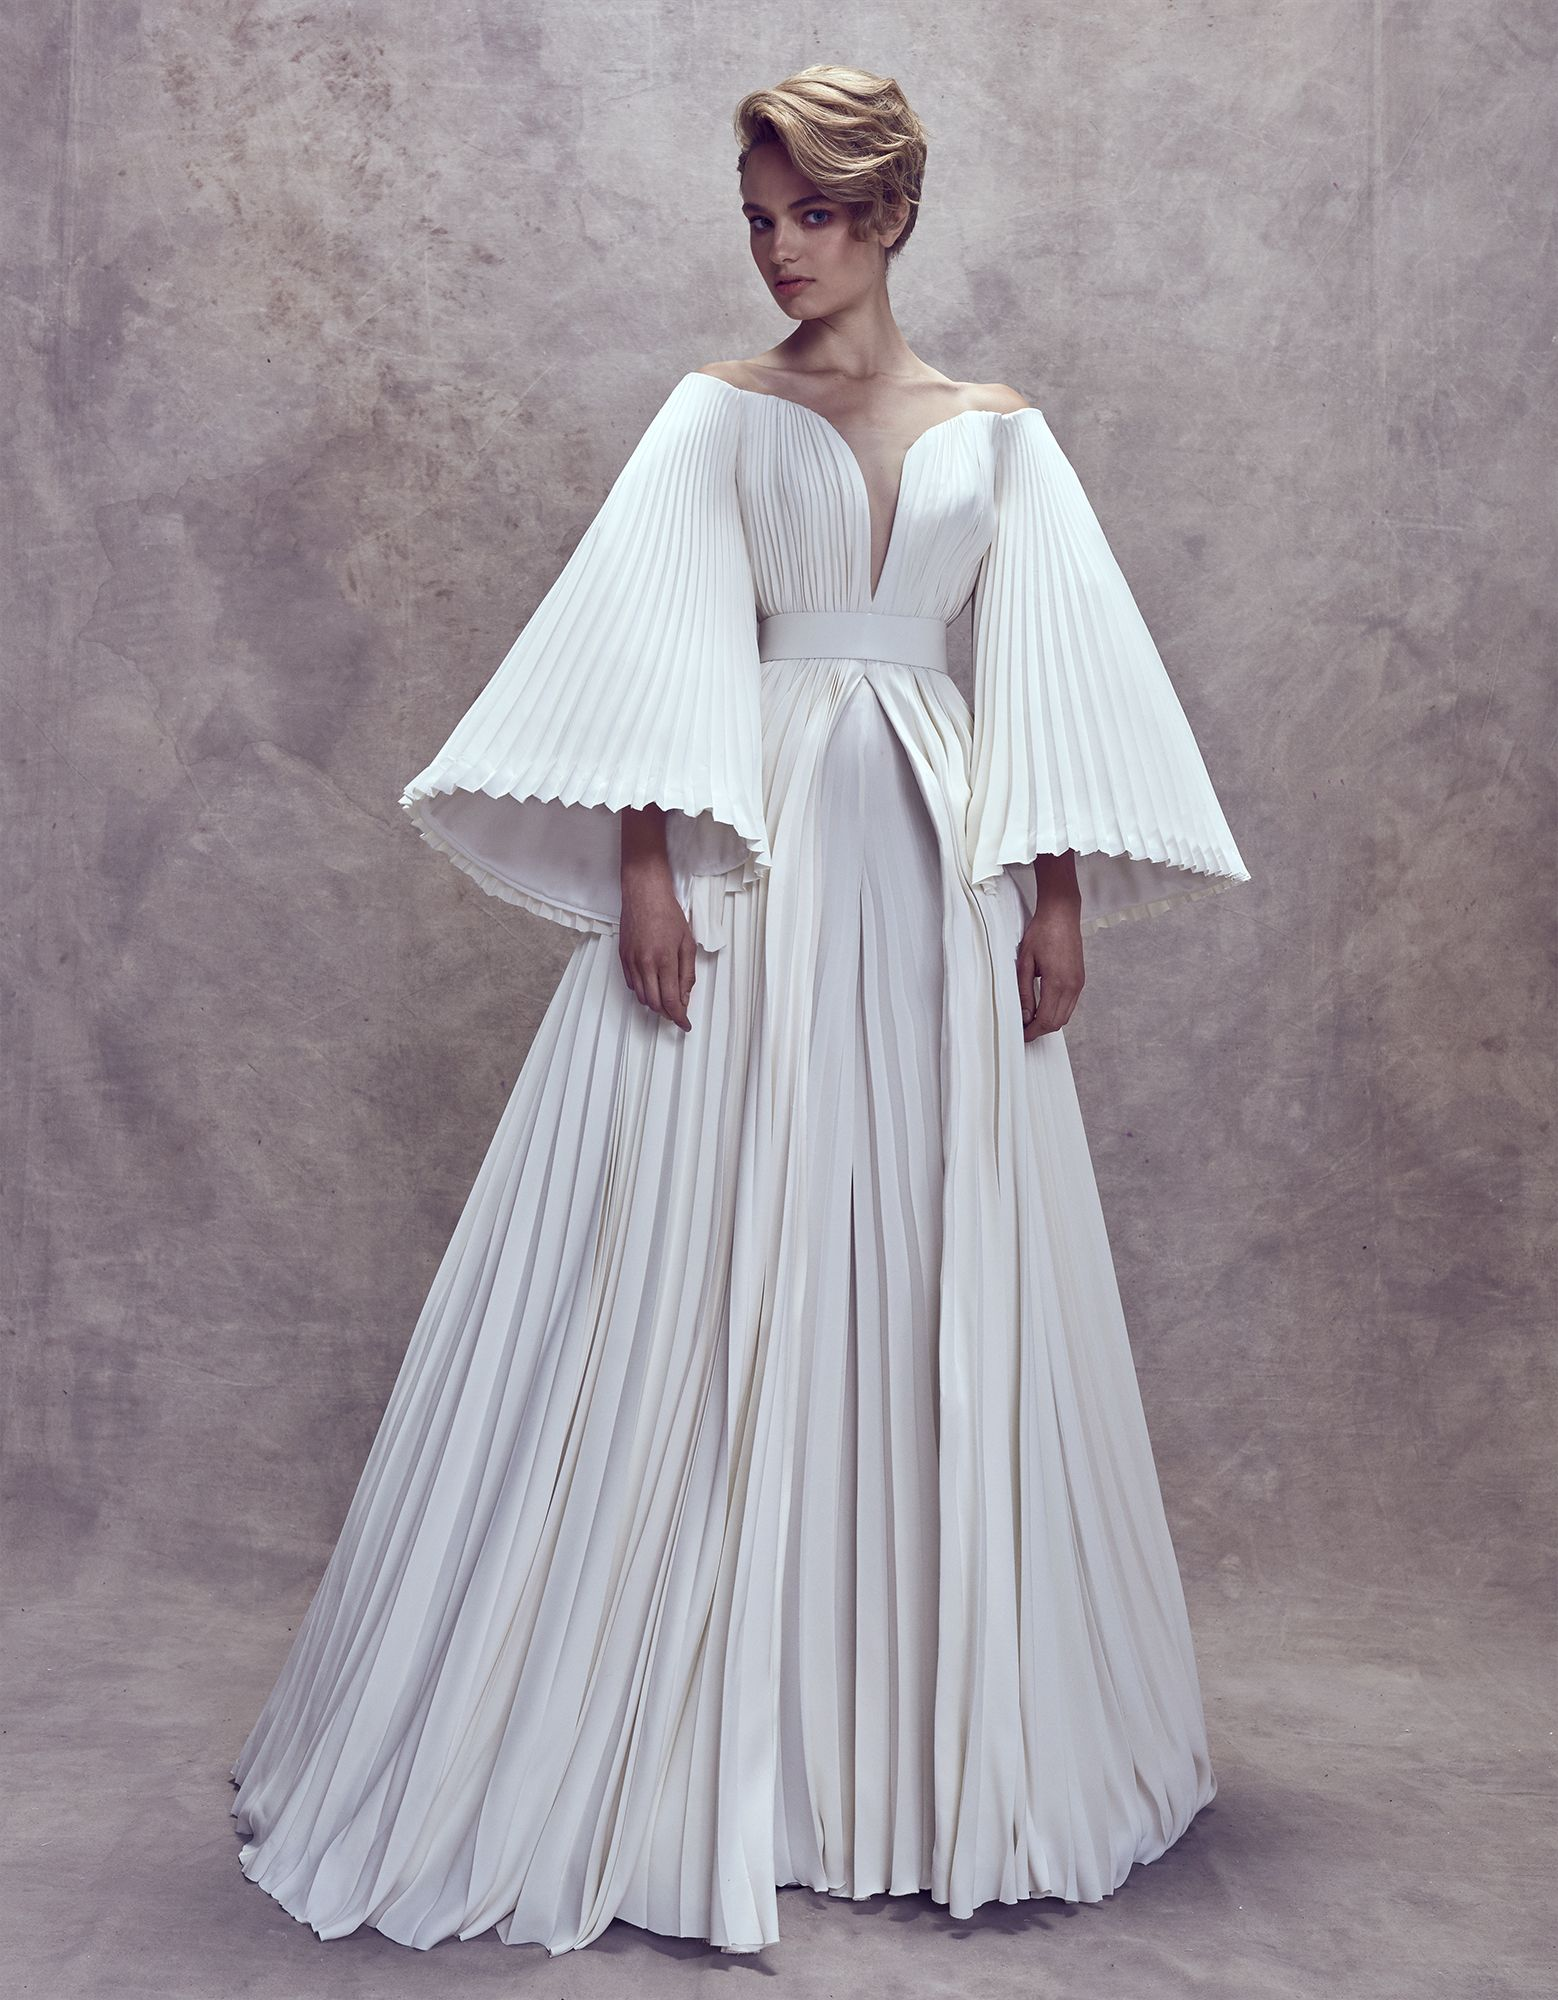 203ad29dd0 Ashi Studio Fall Winter 2017-2018 Couture Collection